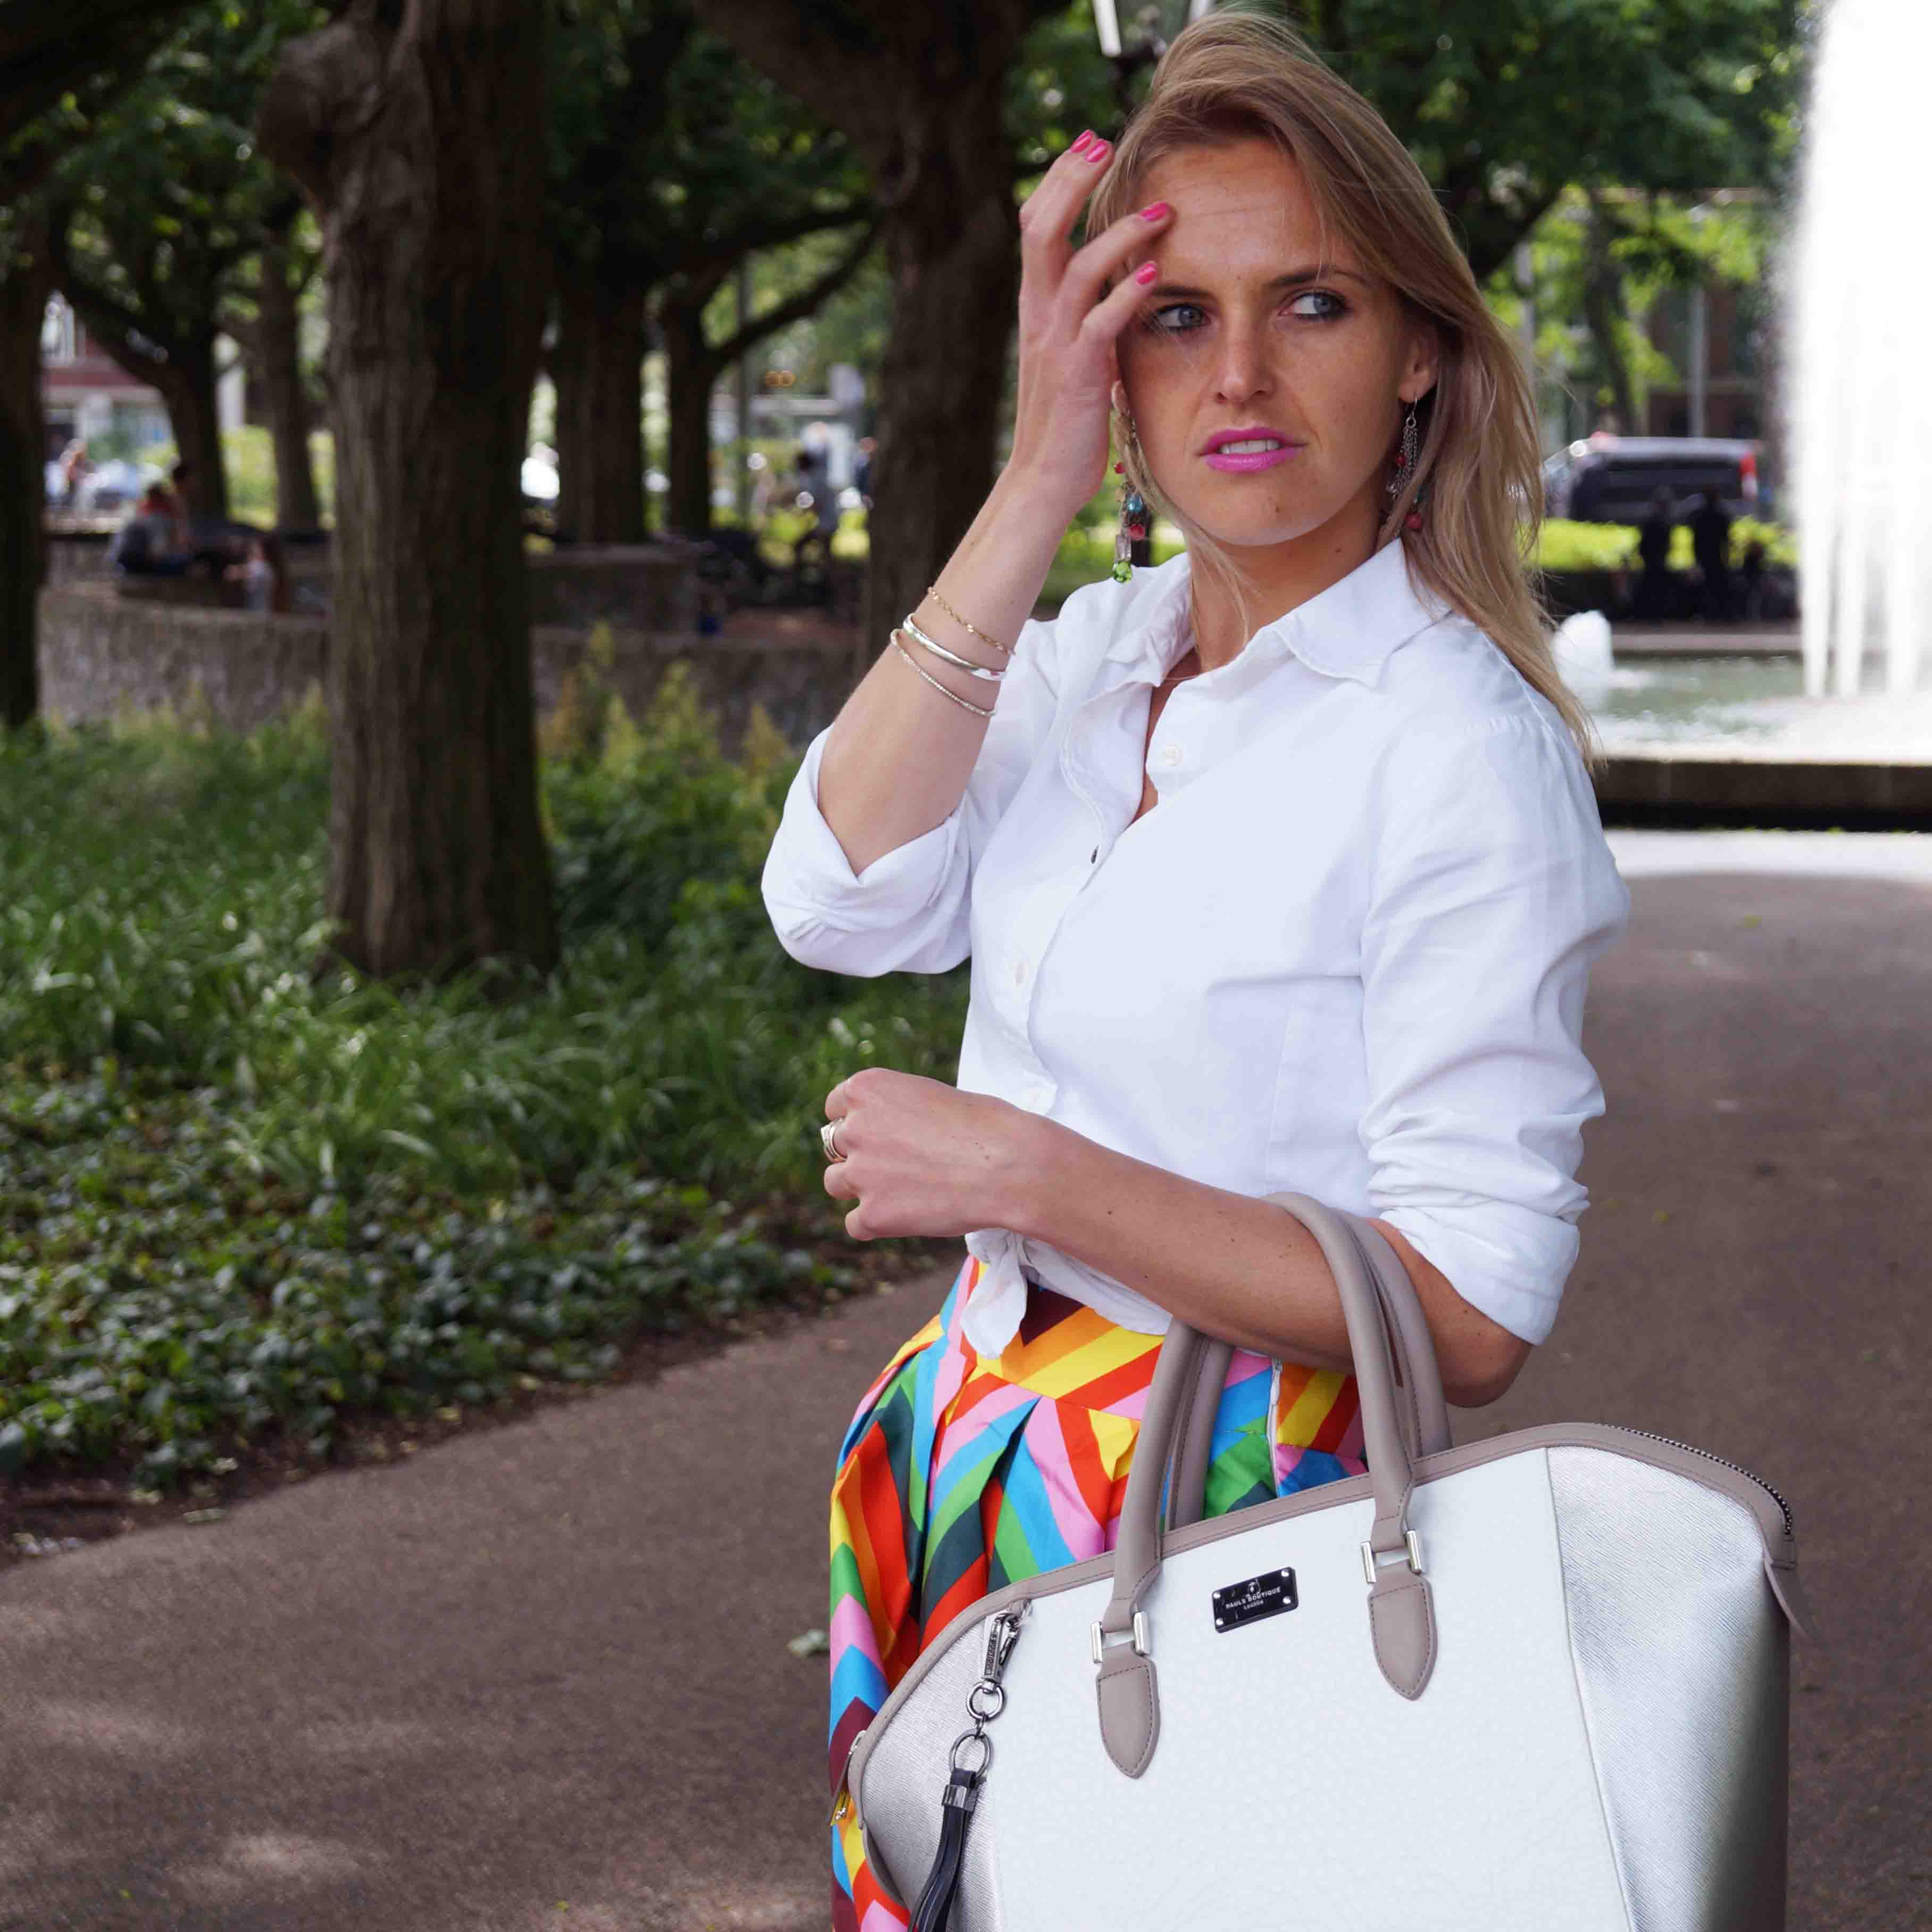 Bag at You - Fashion Blog - Paul's Boutique bags - Tassen - Summer OOTD